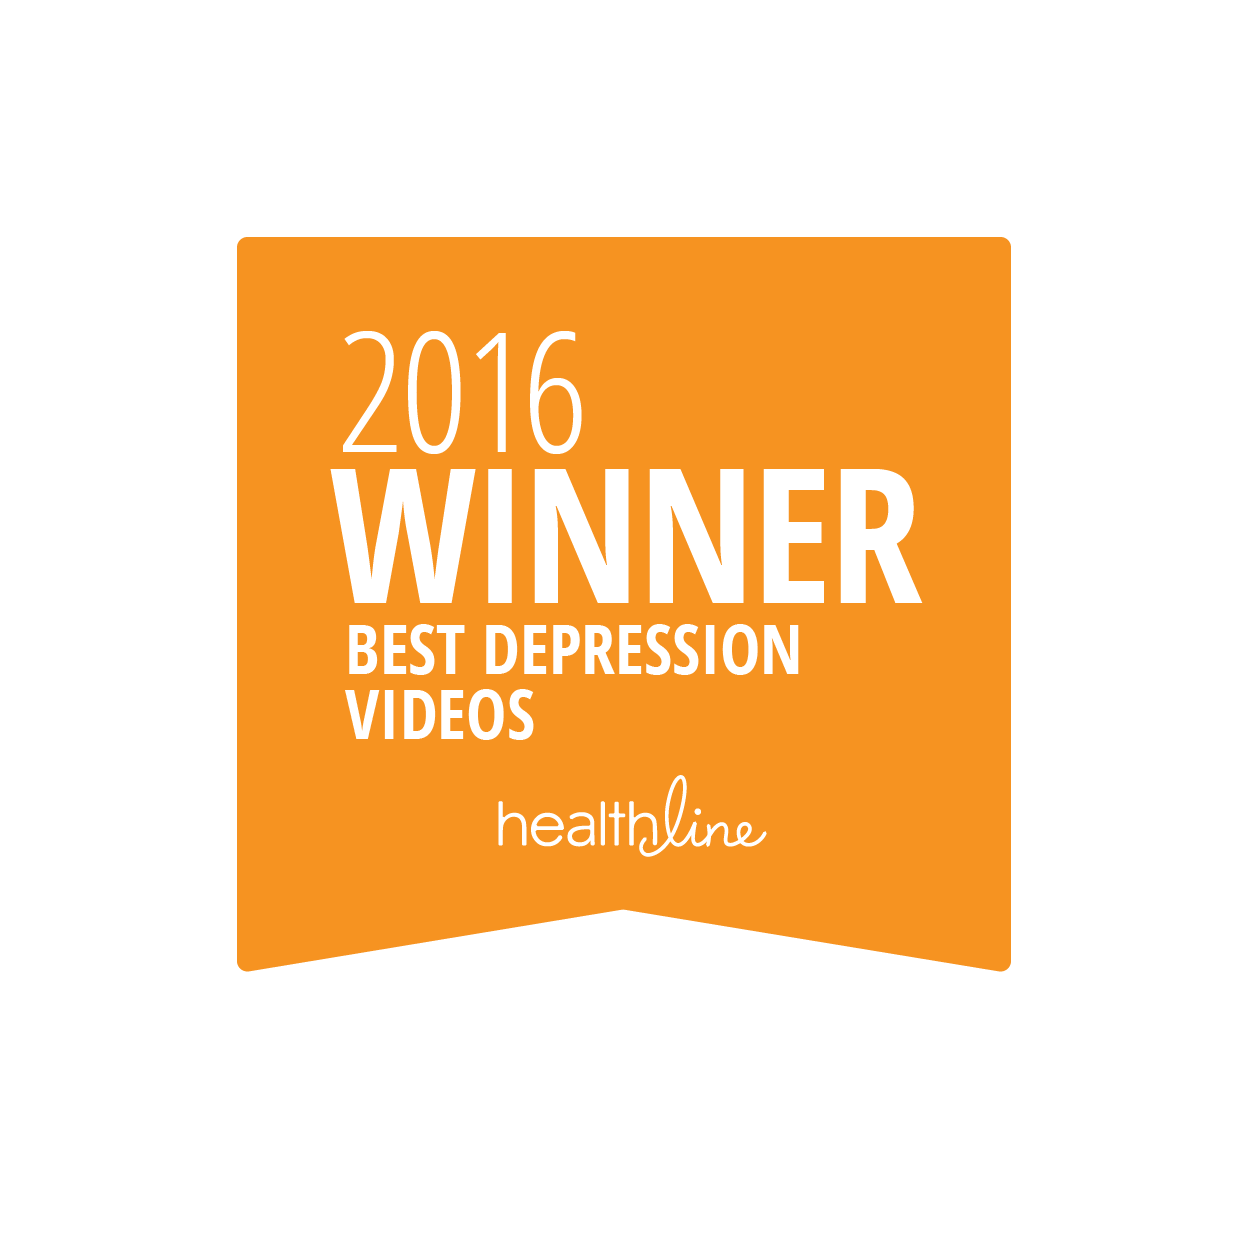 The Best Depression Videos of the Year